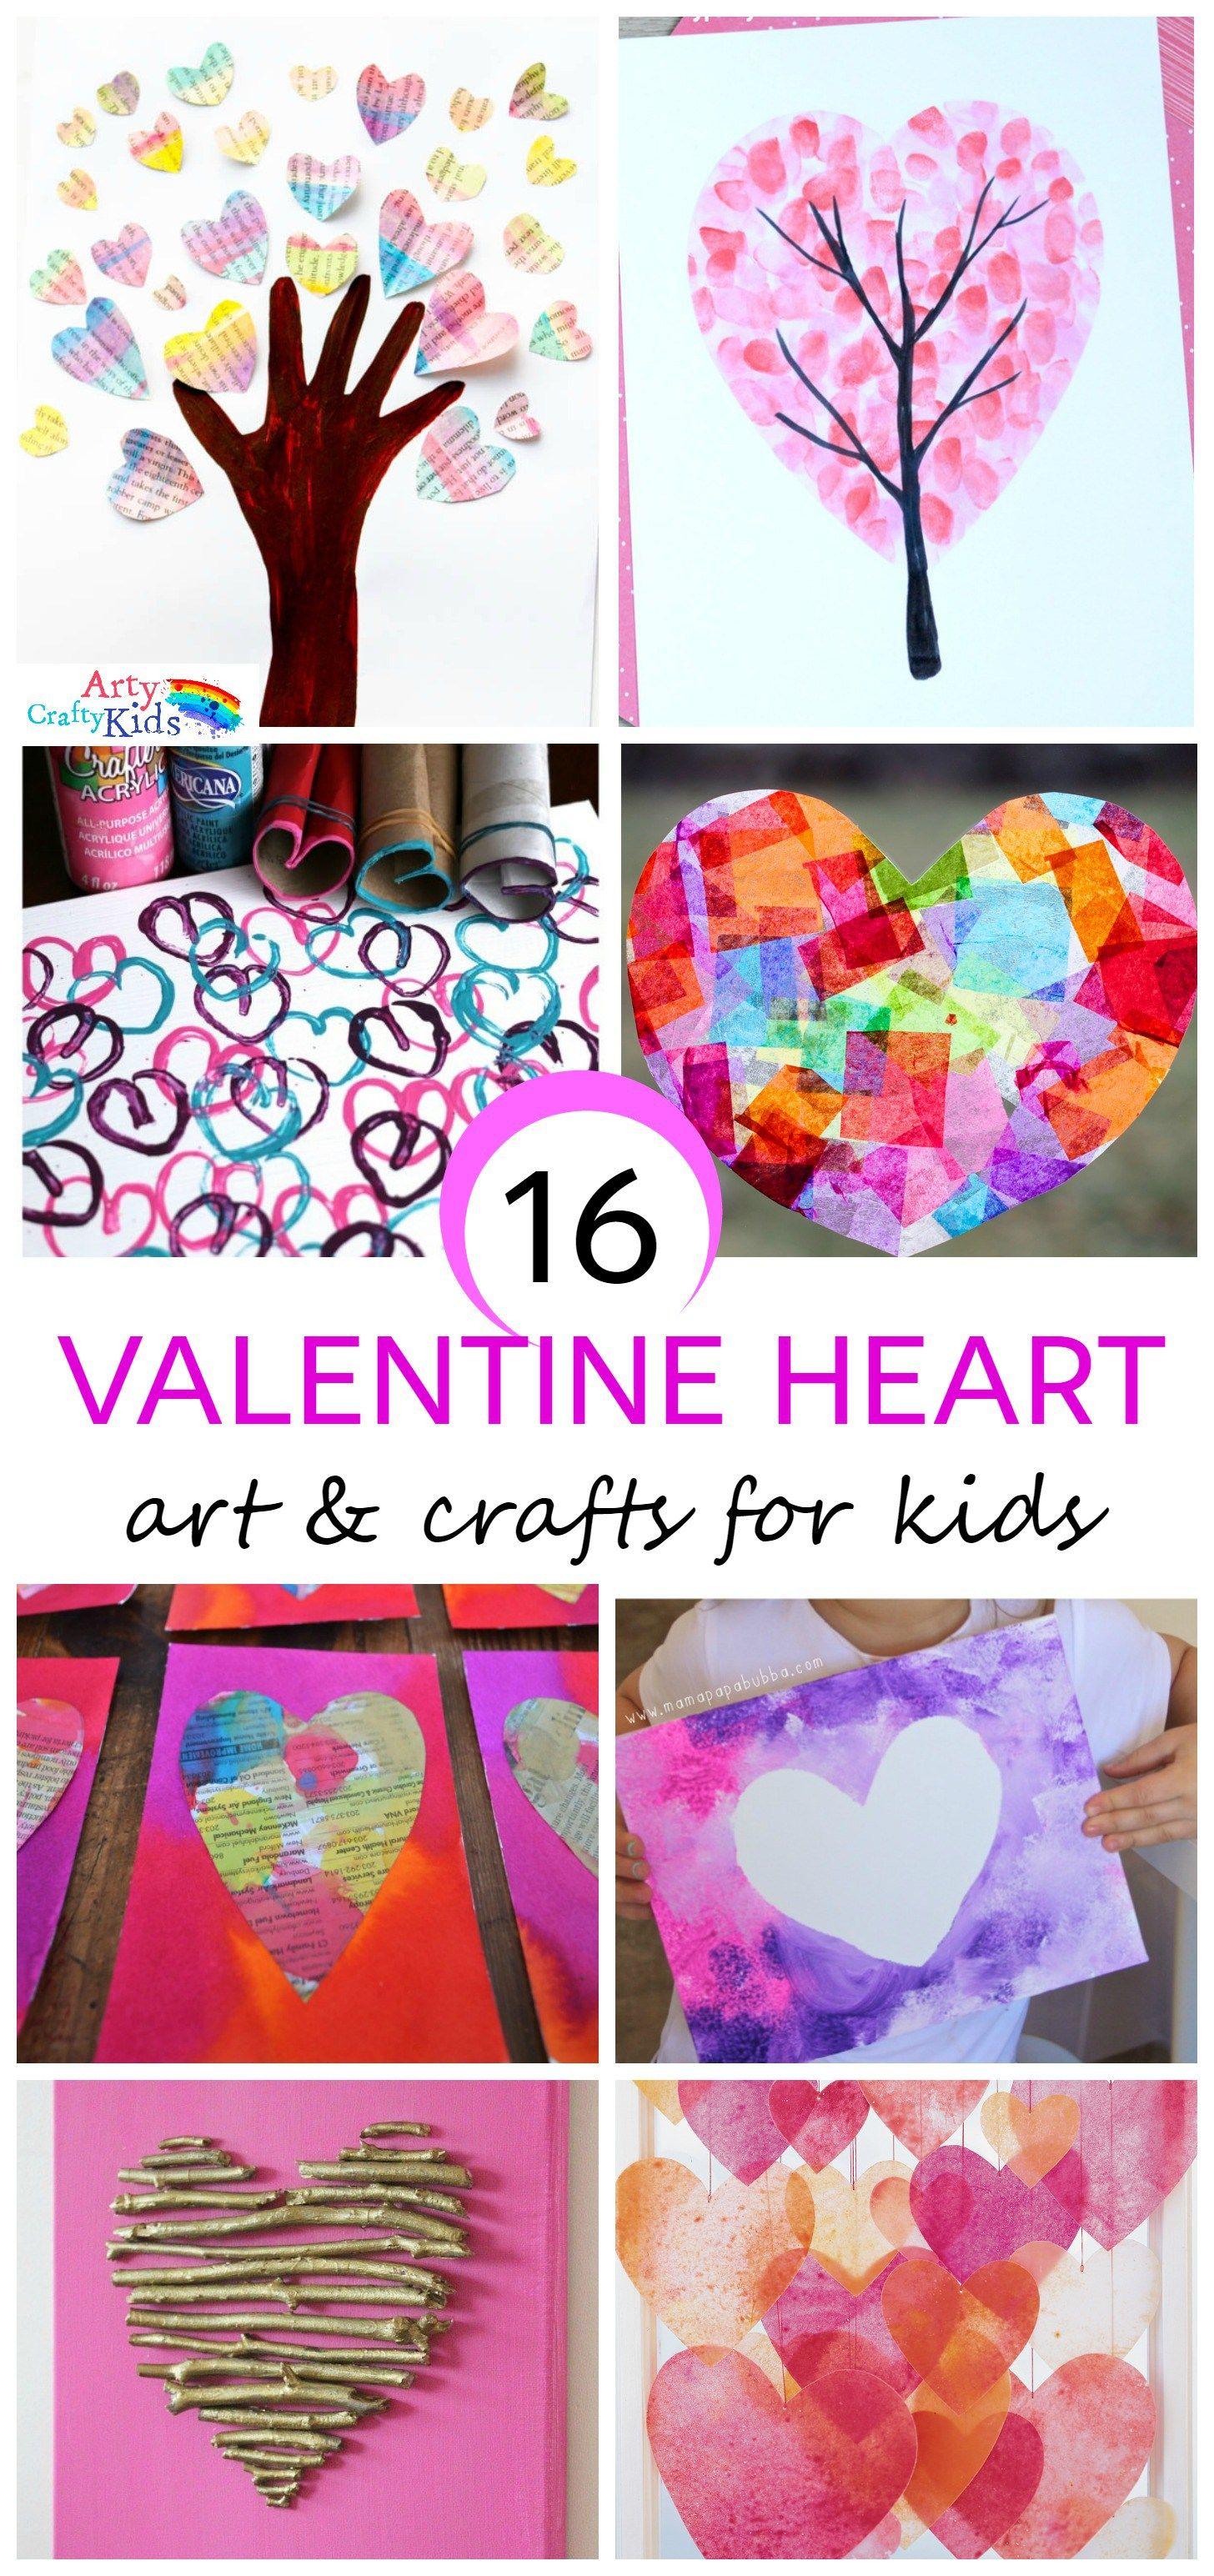 Quick and easy valentine crafts - 16 Kids Valentine Heart Craft Ideas